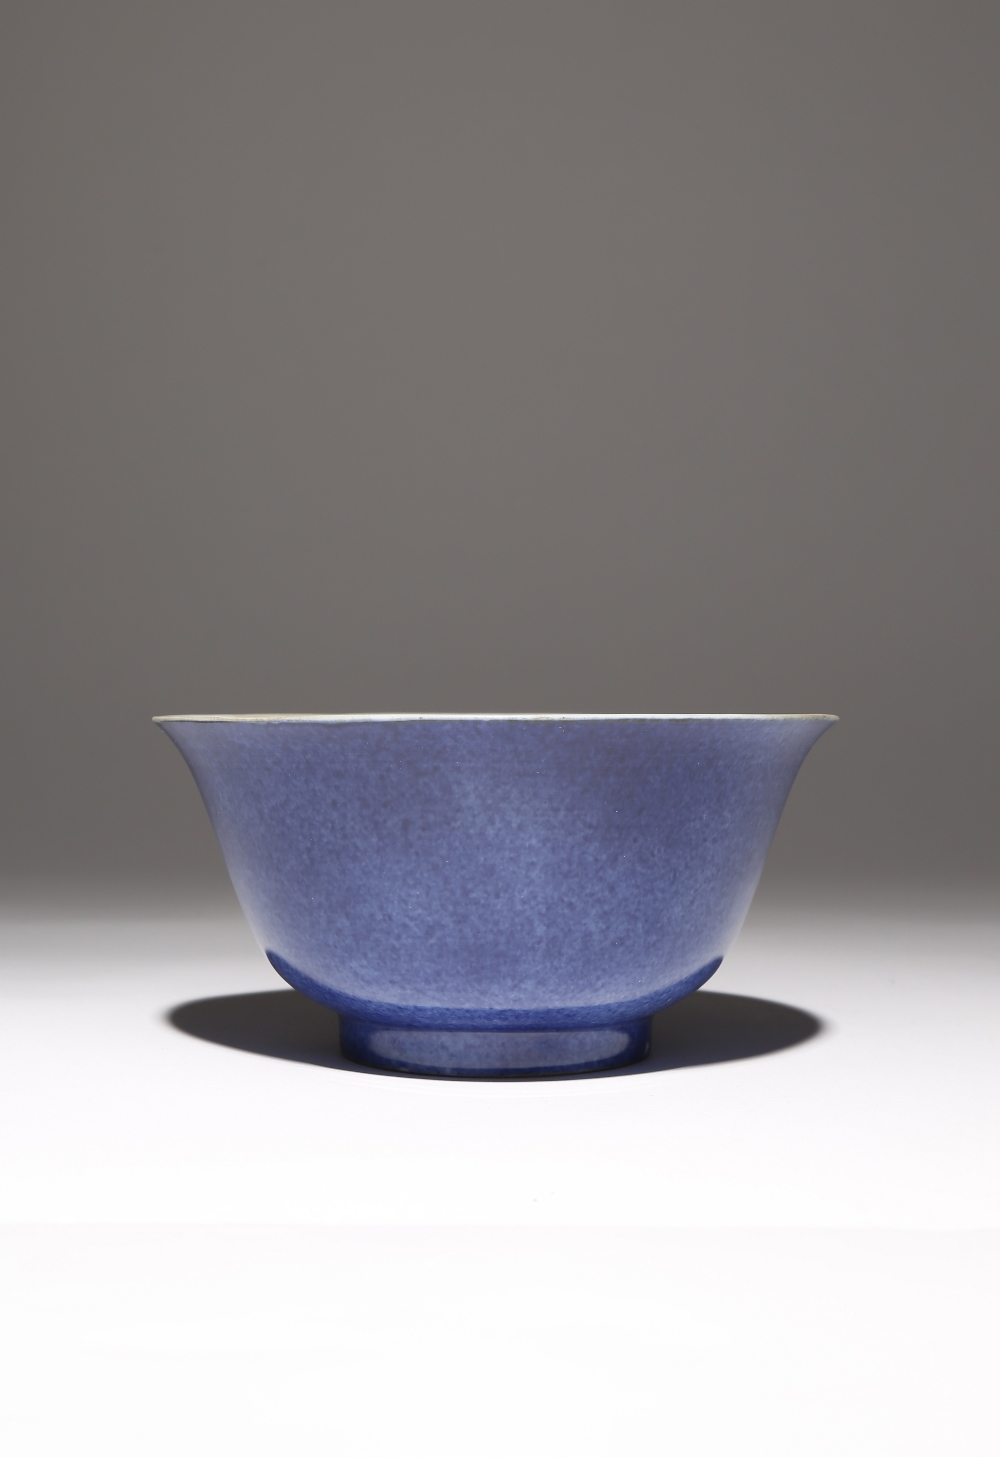 A CHINESE POWDER BLUE GLAZED BOWL KANGXI 1662-1722 The U-shaped body rising from a short straight